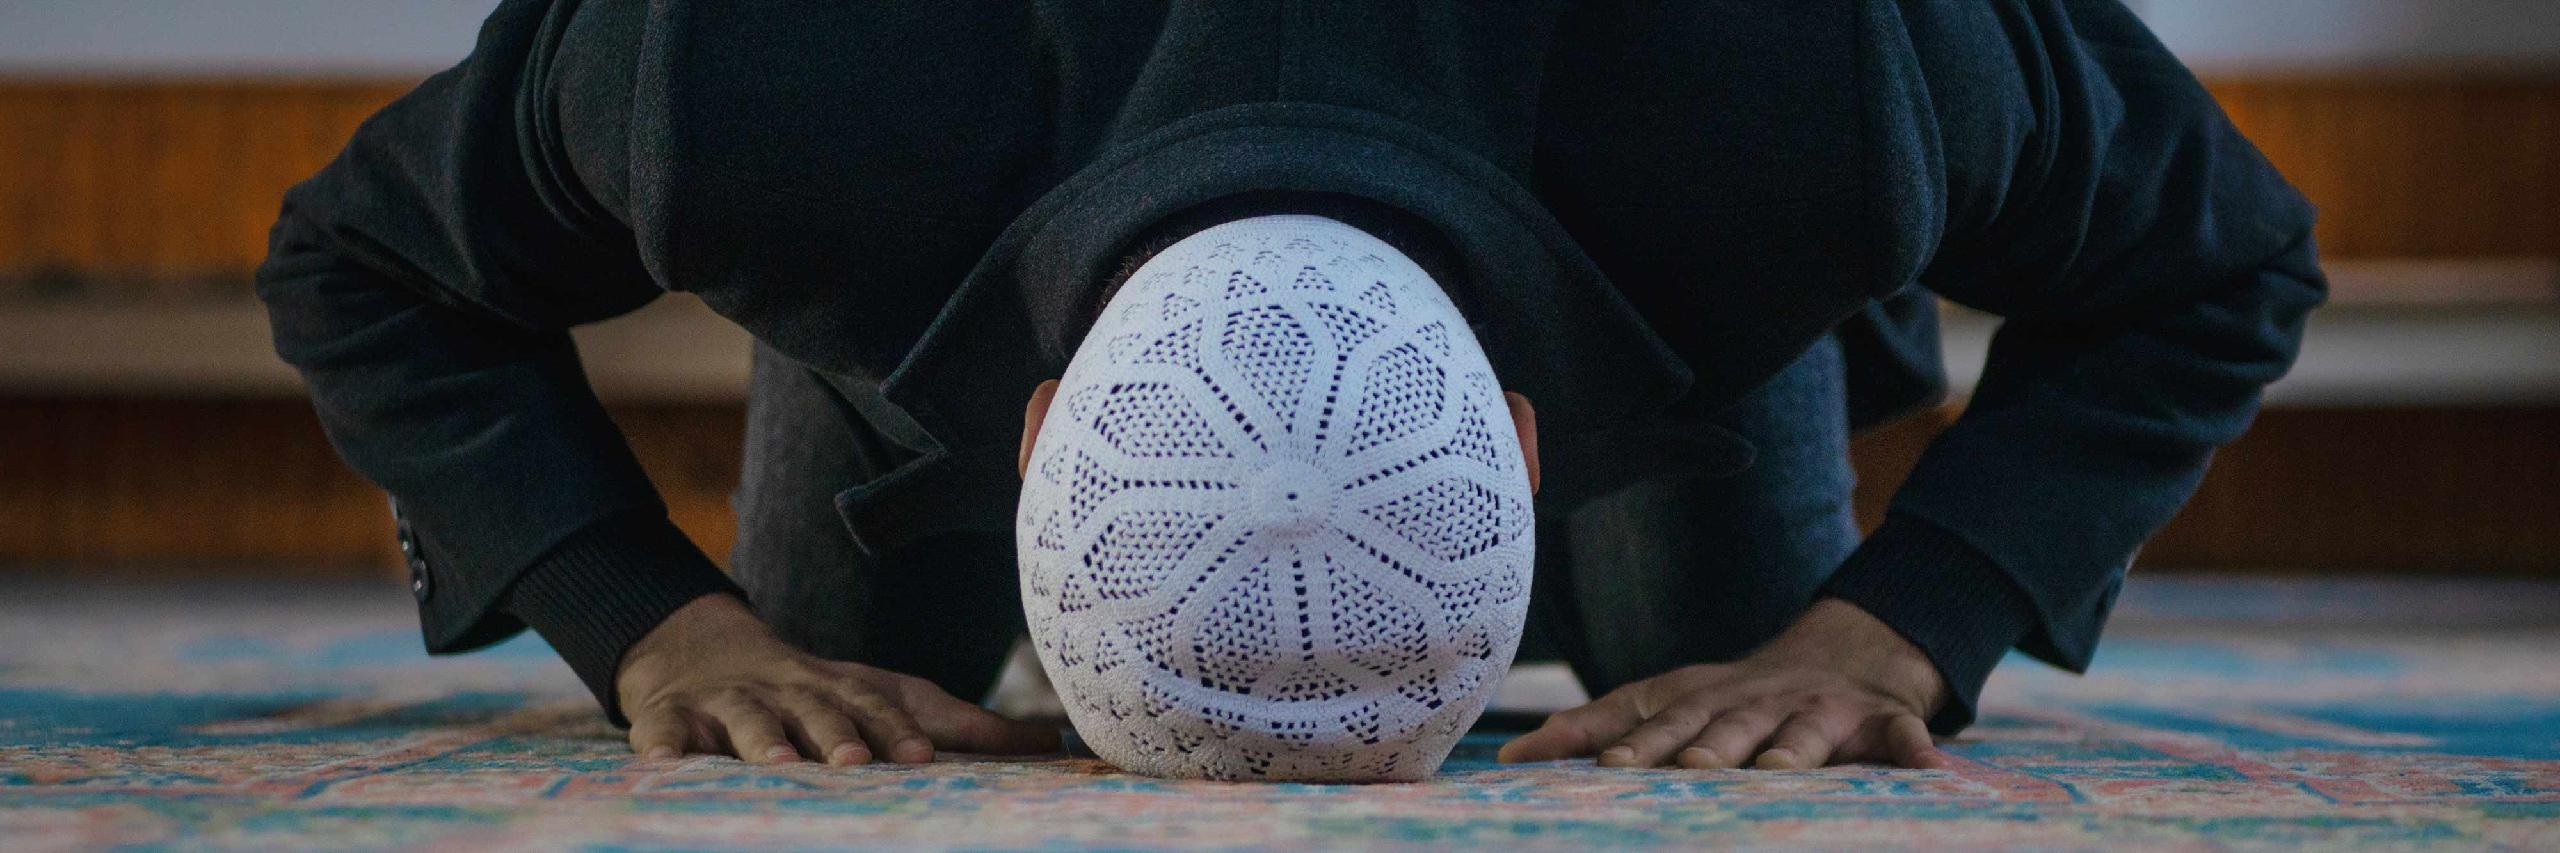 The Art of Worship: How to Make the Most of Ramadan Nights